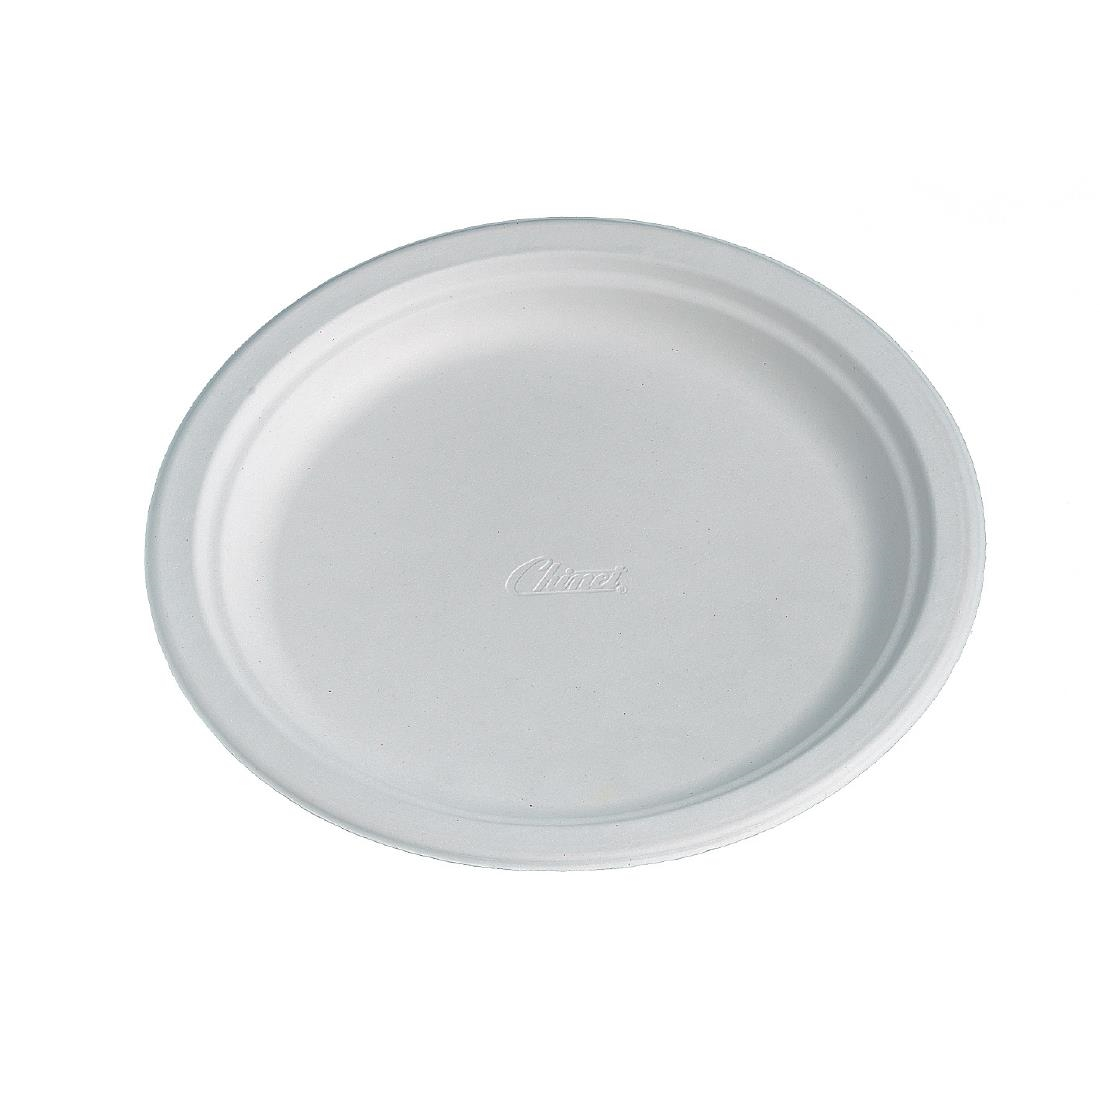 Huhtamaki Compostable Moulded Fibre Plates 220mm (Pack of 125) Pack of 125